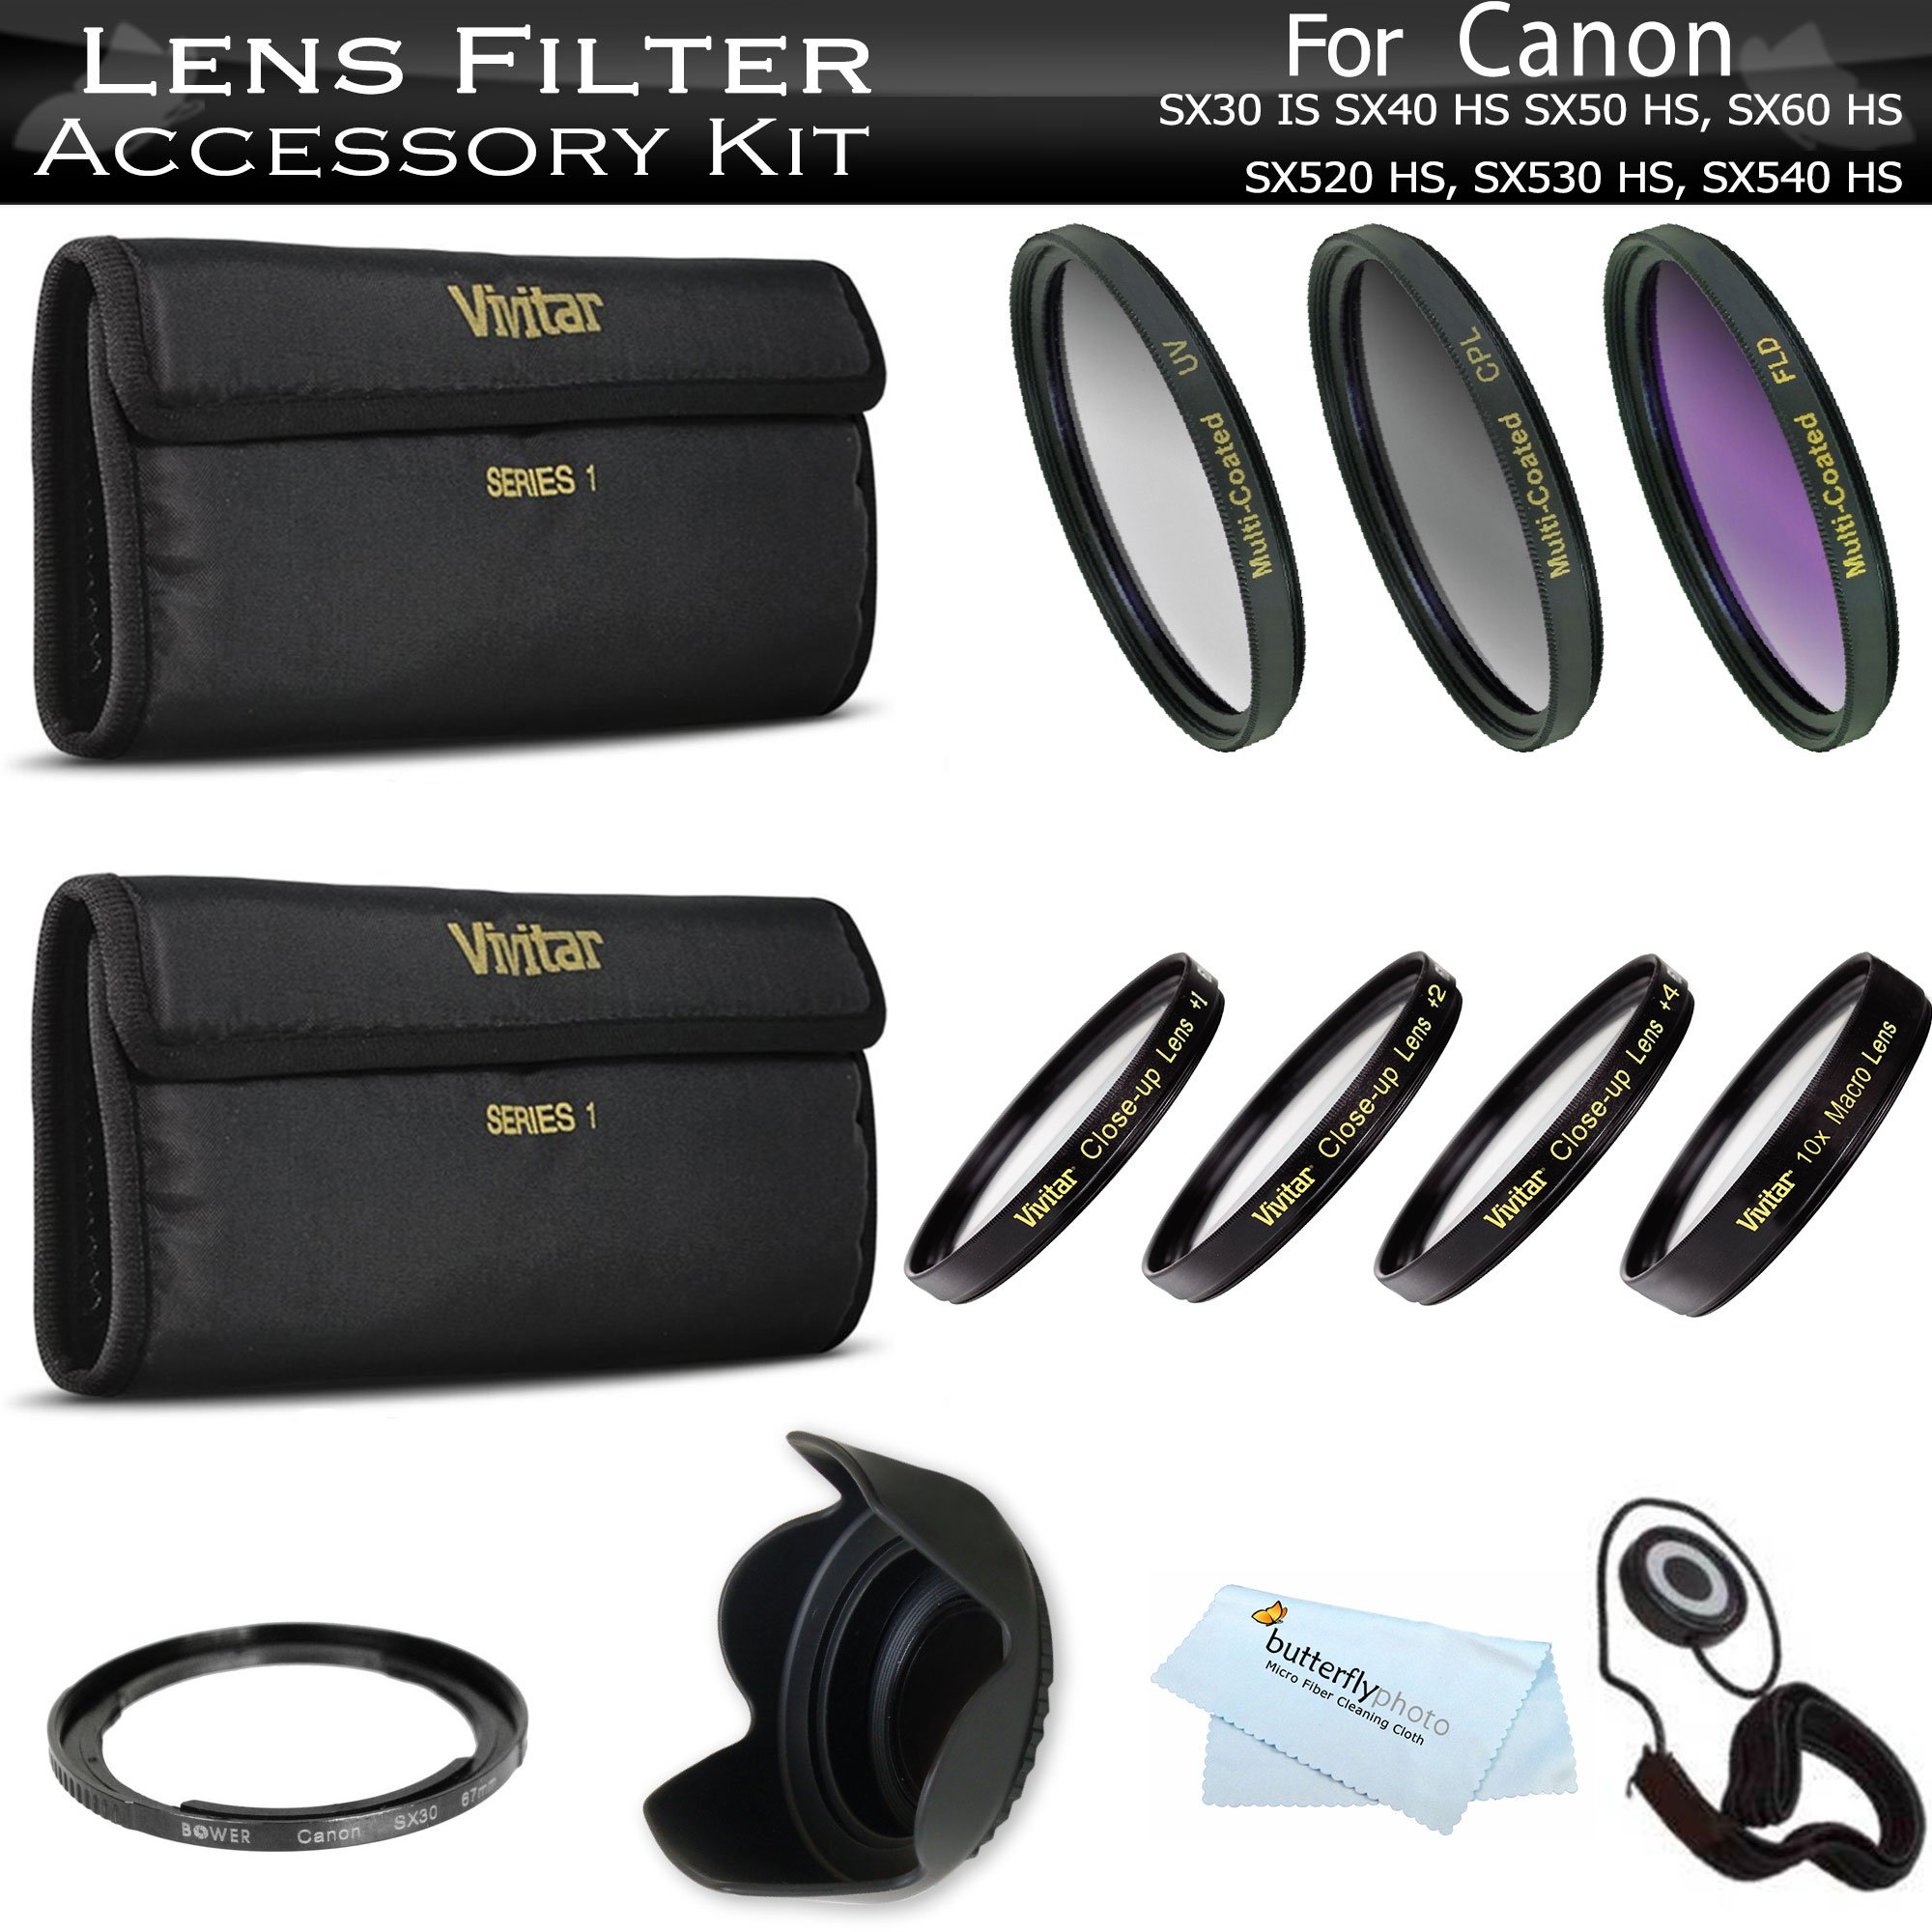 67mm Lens Filter Kit For Canon SX40 HS SX50 HS, SX60 HS, SX520 HS, SX530 HS, SX540 HS Digital Camera Includes Filter Adapter (Replaces FA-DC67A) + Close Up Lens Kit Includes +1 +2 +4 +10 + 3pc Filter Kit + More